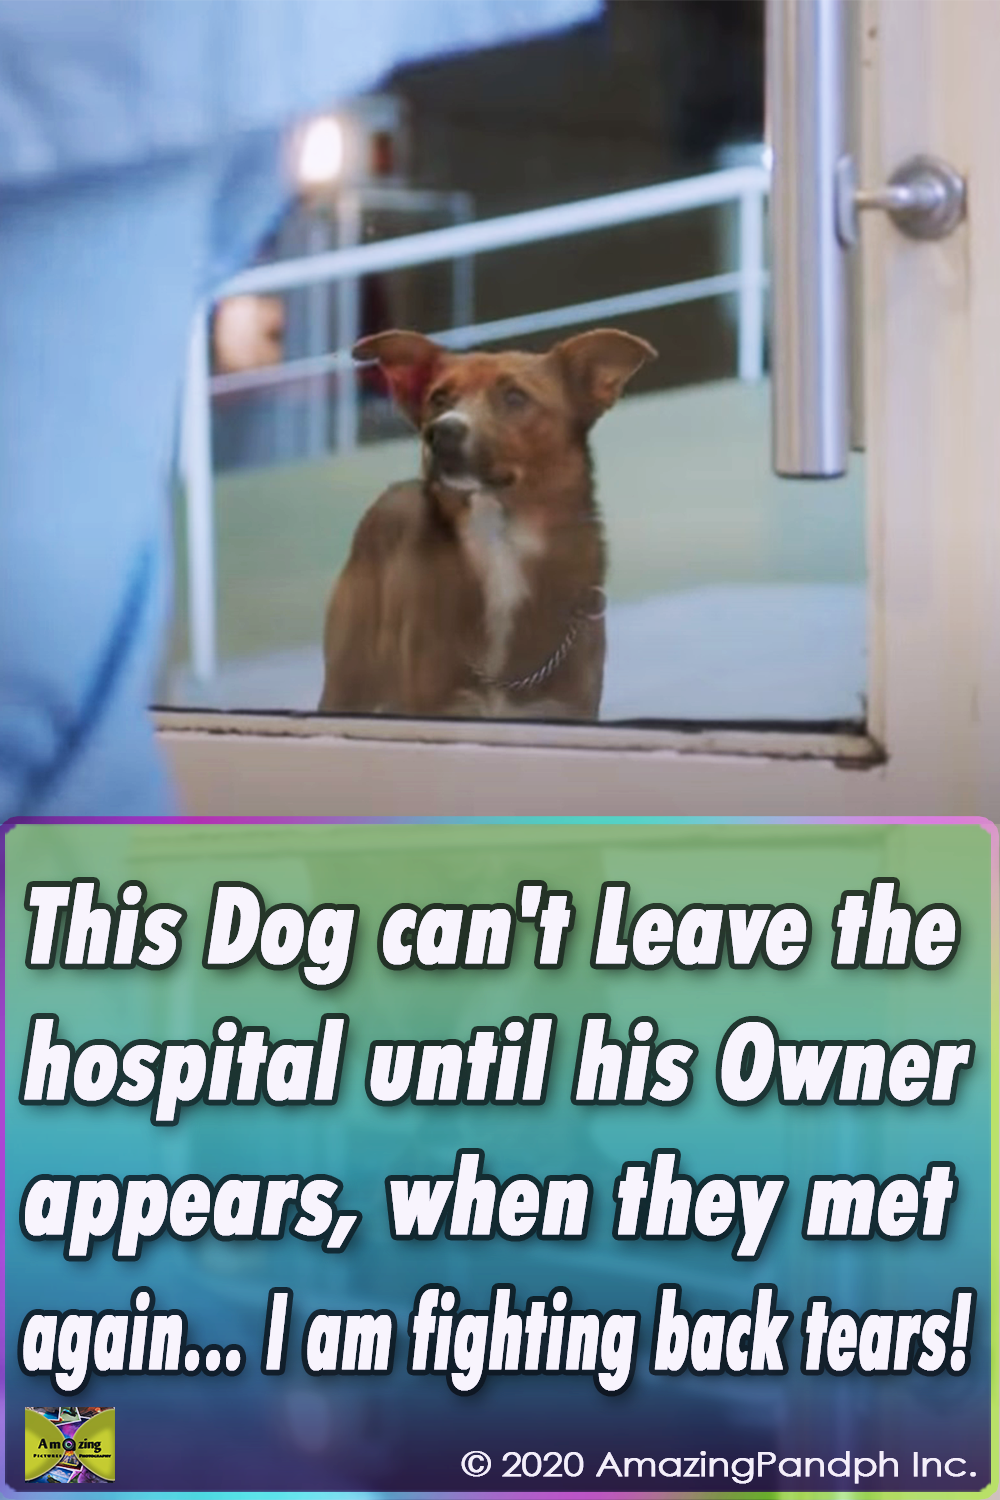 viral,video,touching storie,magical,warm your heart,approaching,animal,dog,sik owner,special needs,most shared,most watched,must go viral,storie must watched,hospital,commercial